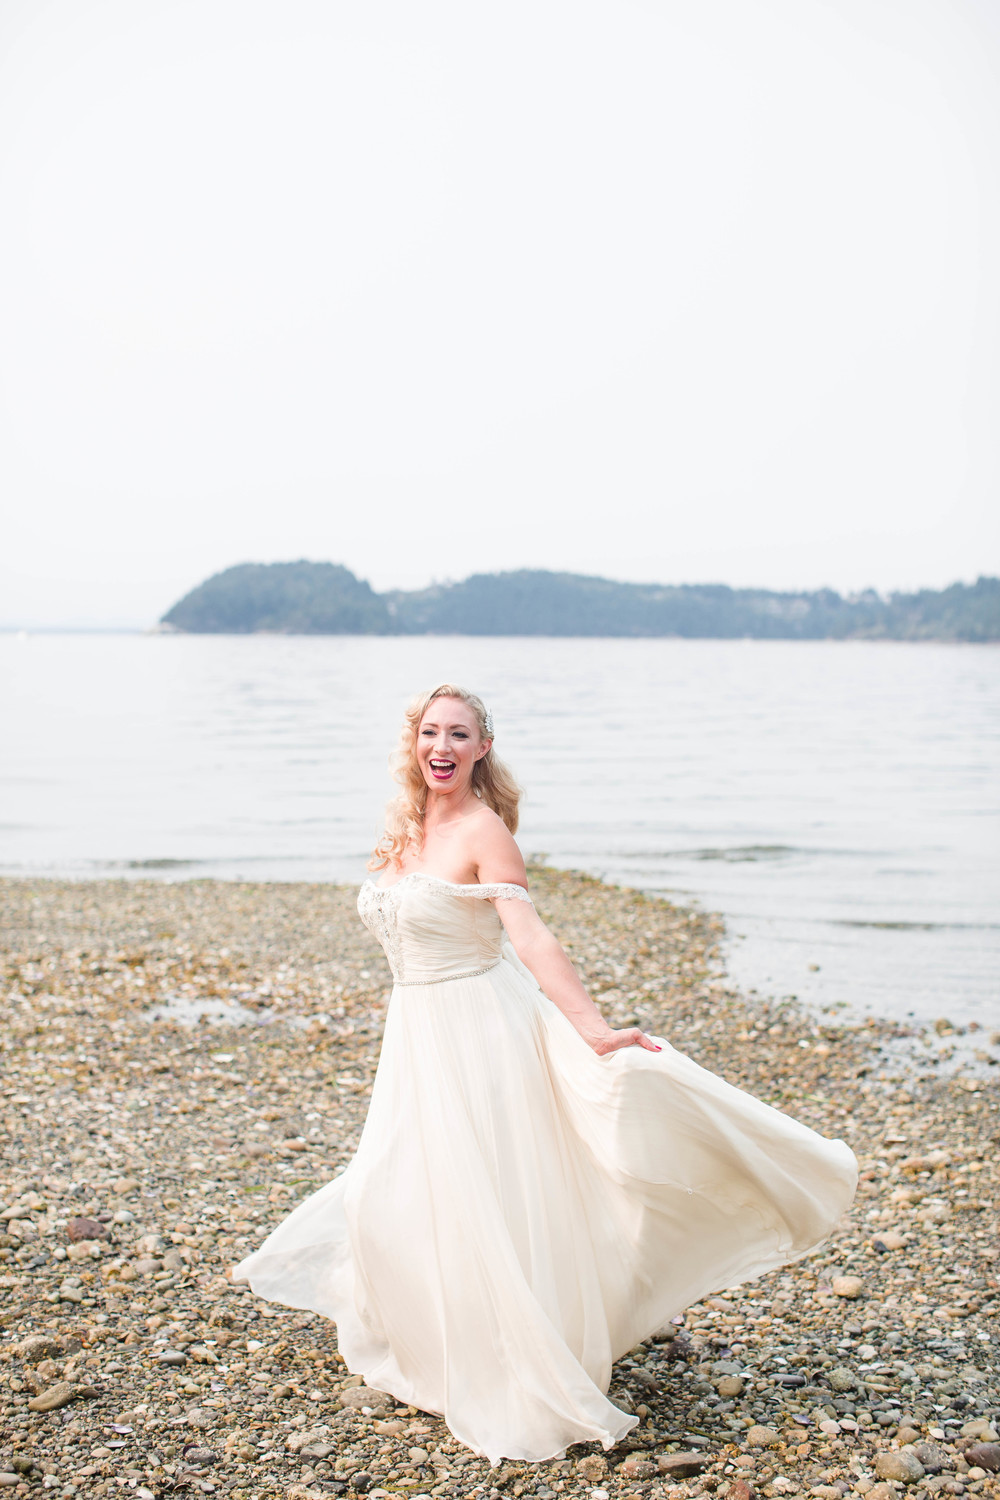 Courtney+Matt_Bellingham+Wedding_Seattle+Wedding+Photographer118.jpg